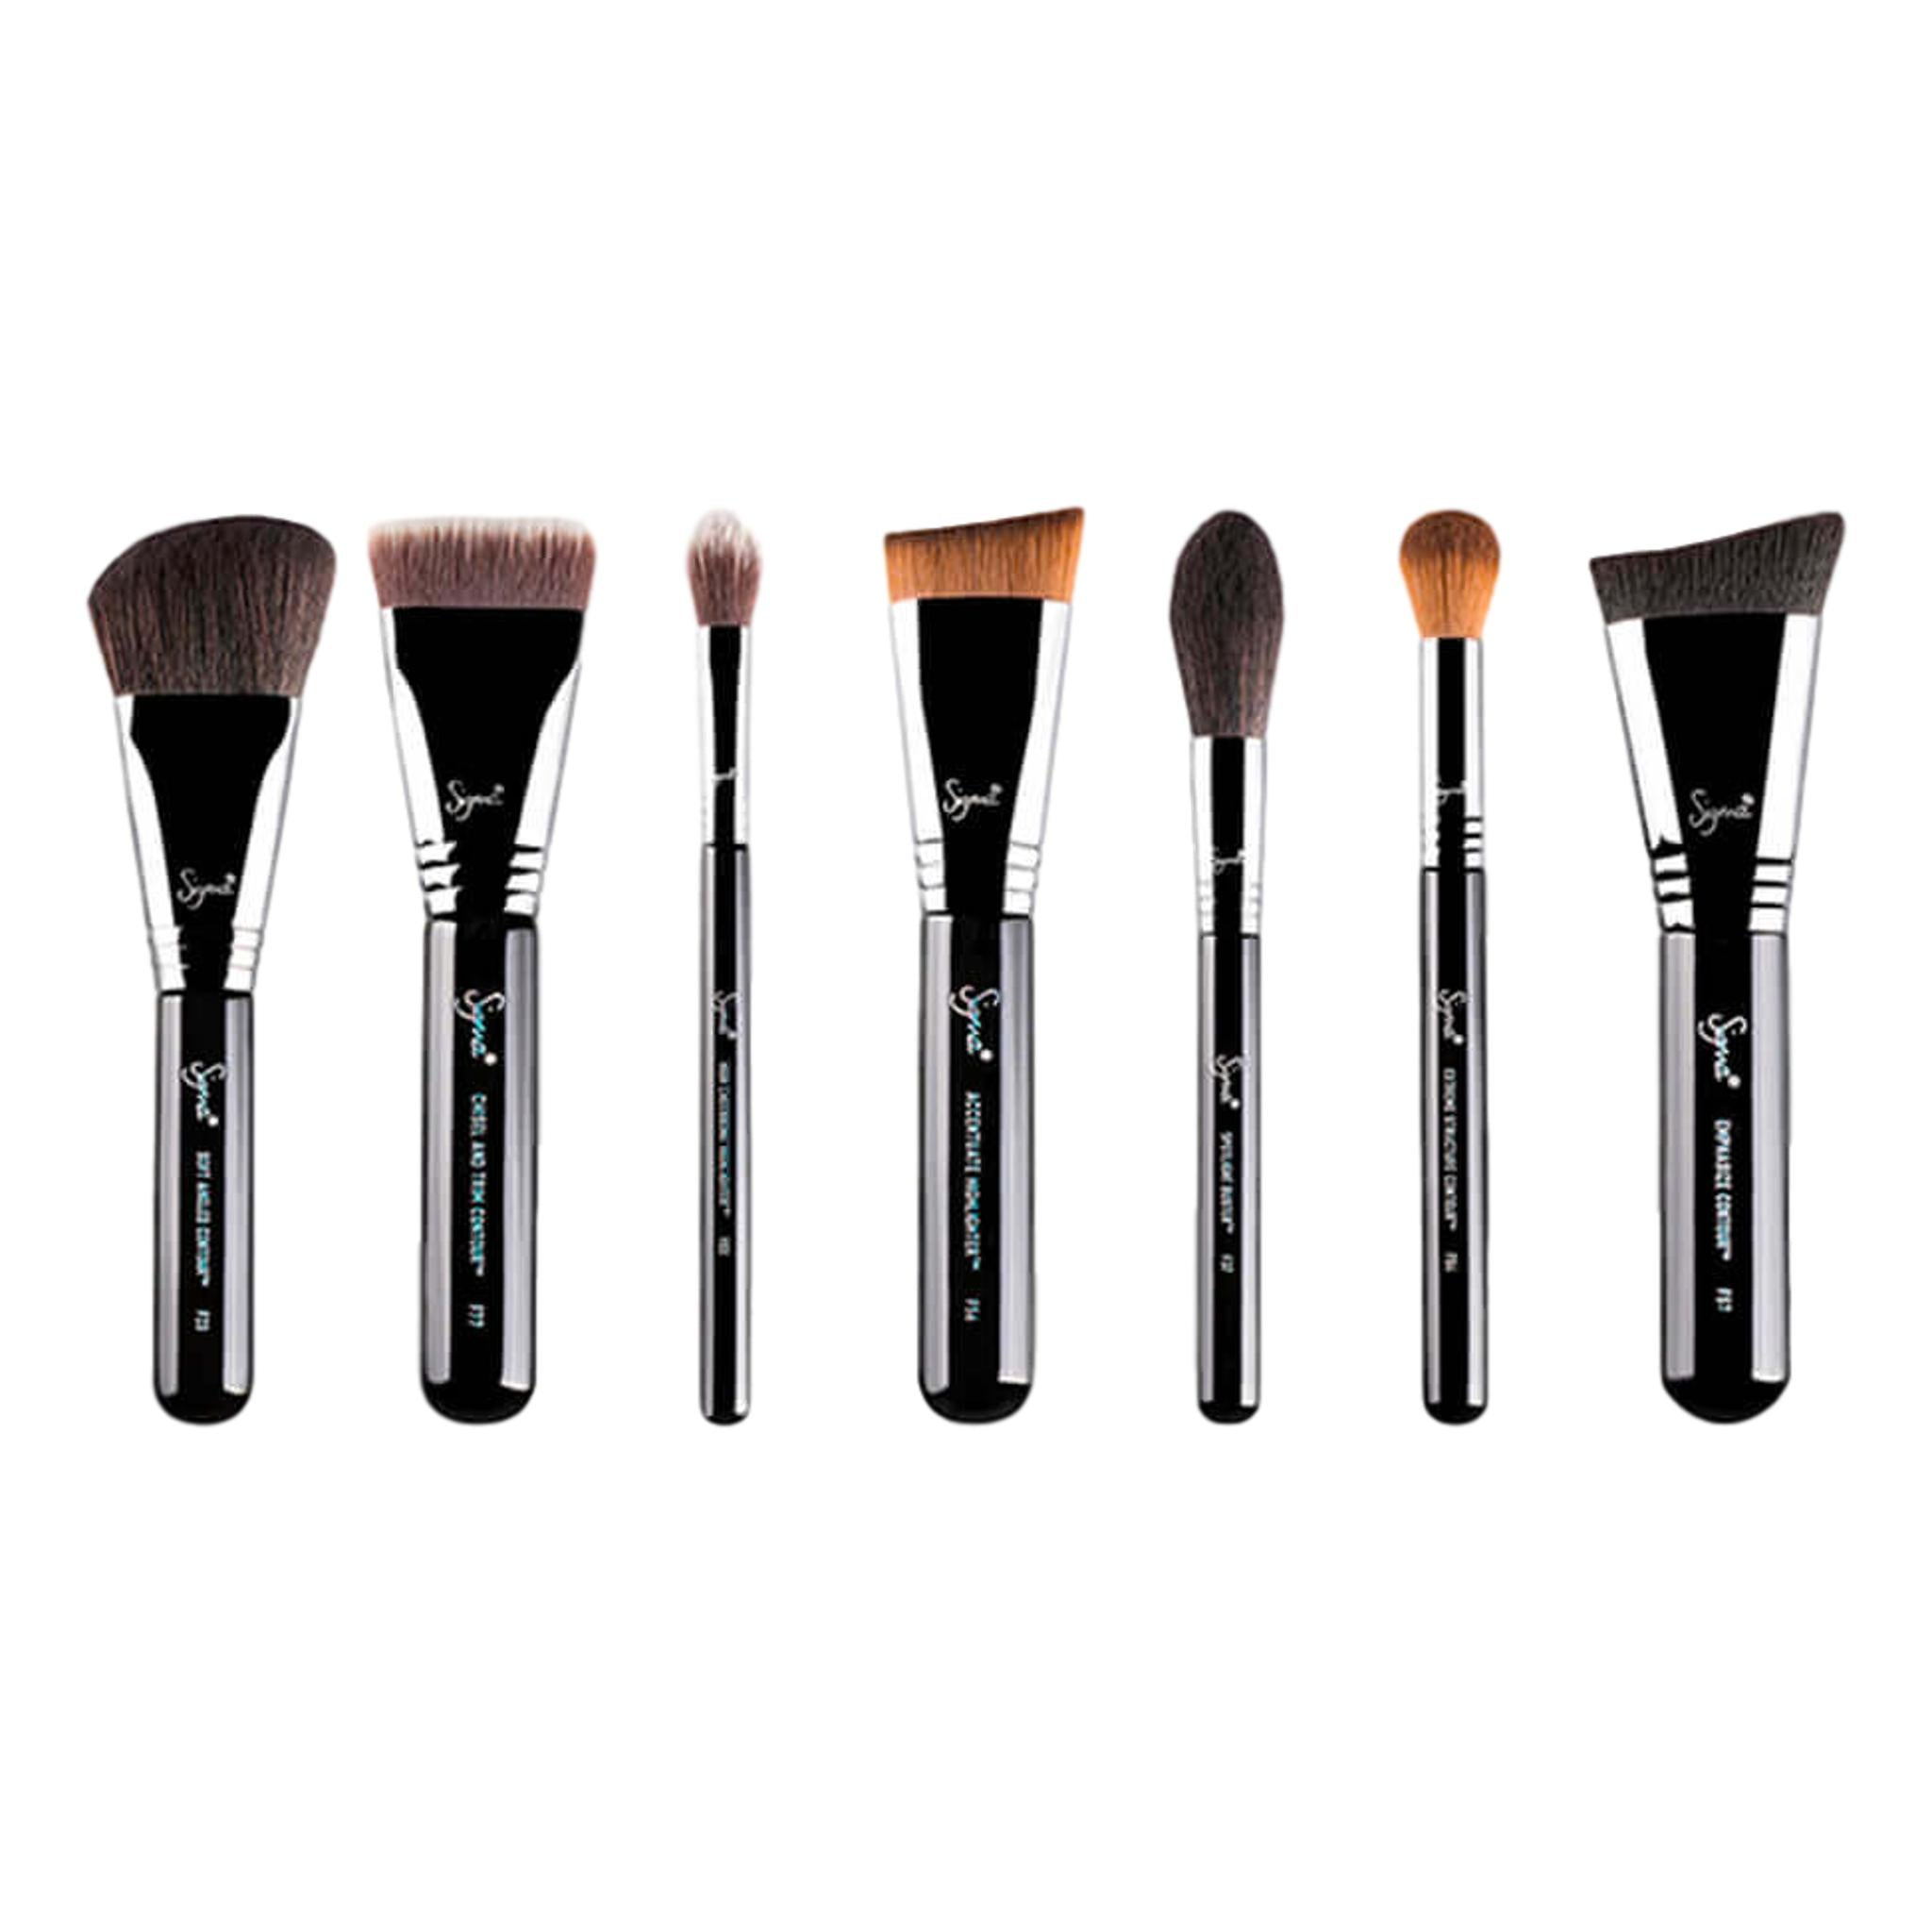 Sigma Highlight and Contour Brush Set, Brush Set, London Loves Beauty